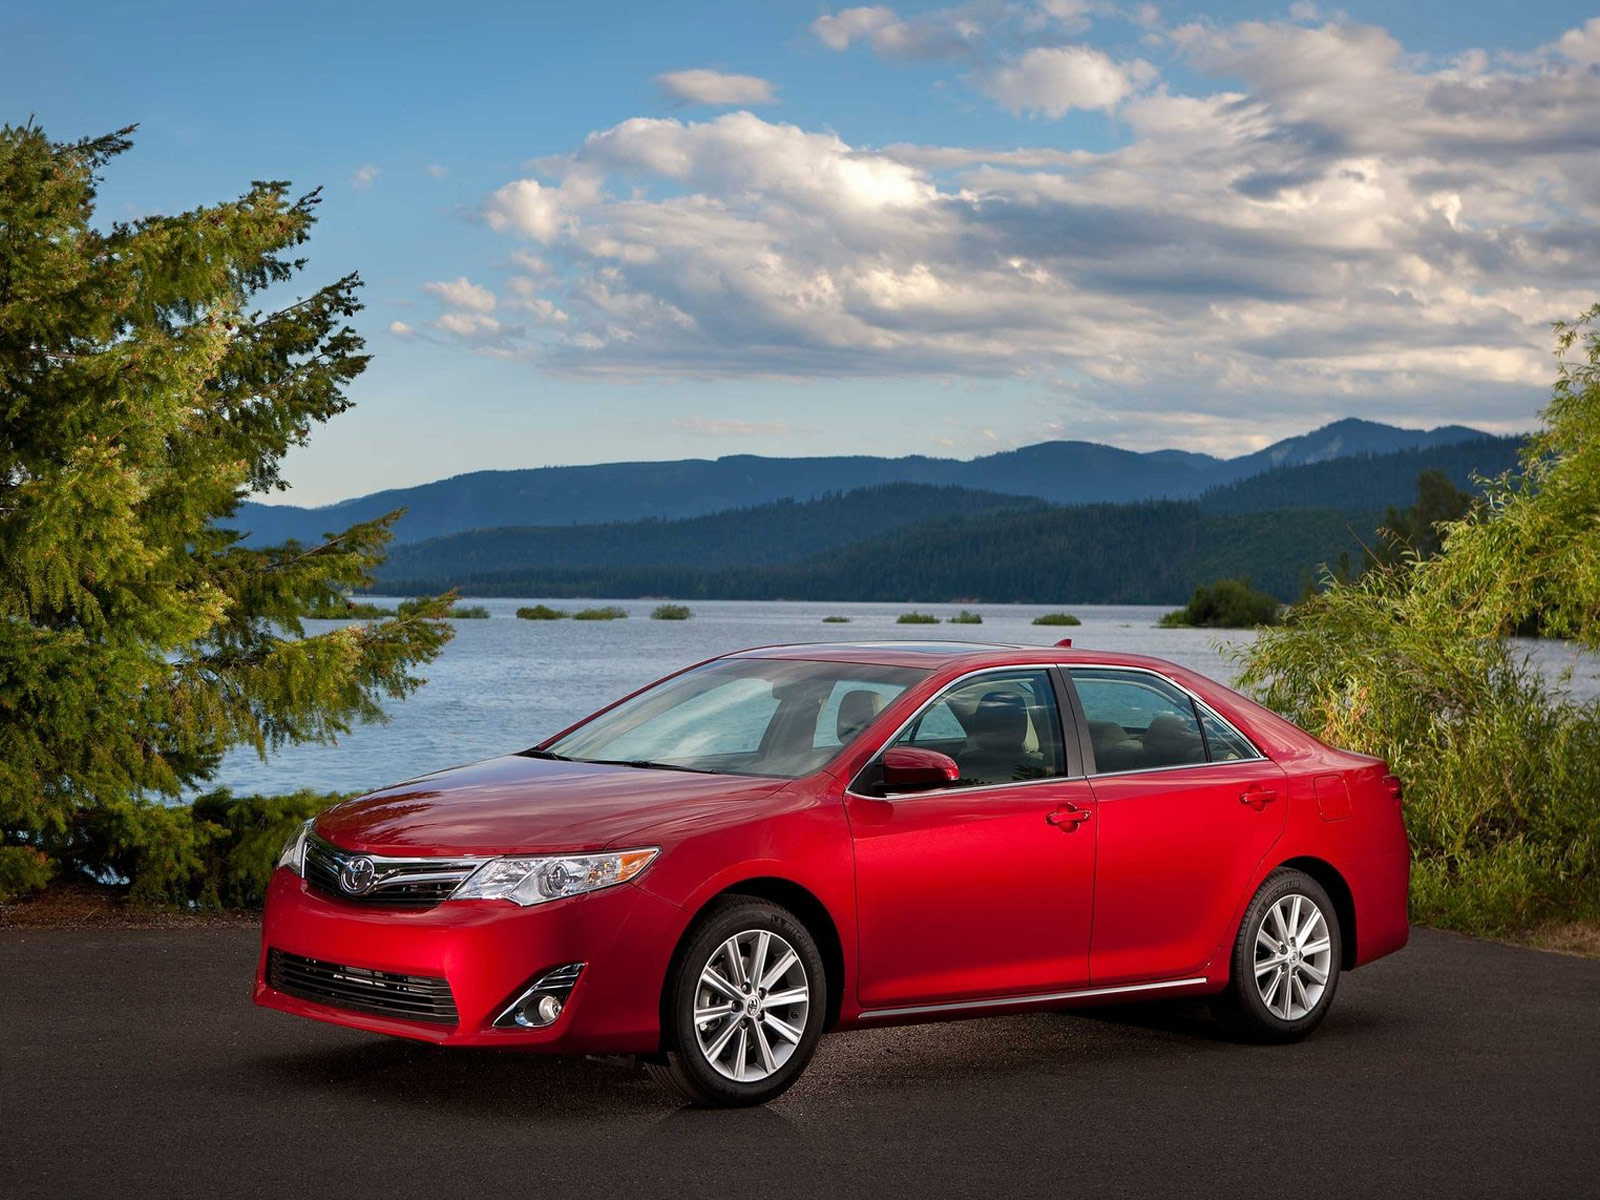 2012 Toyota Camry Car Accident Lawyers Info